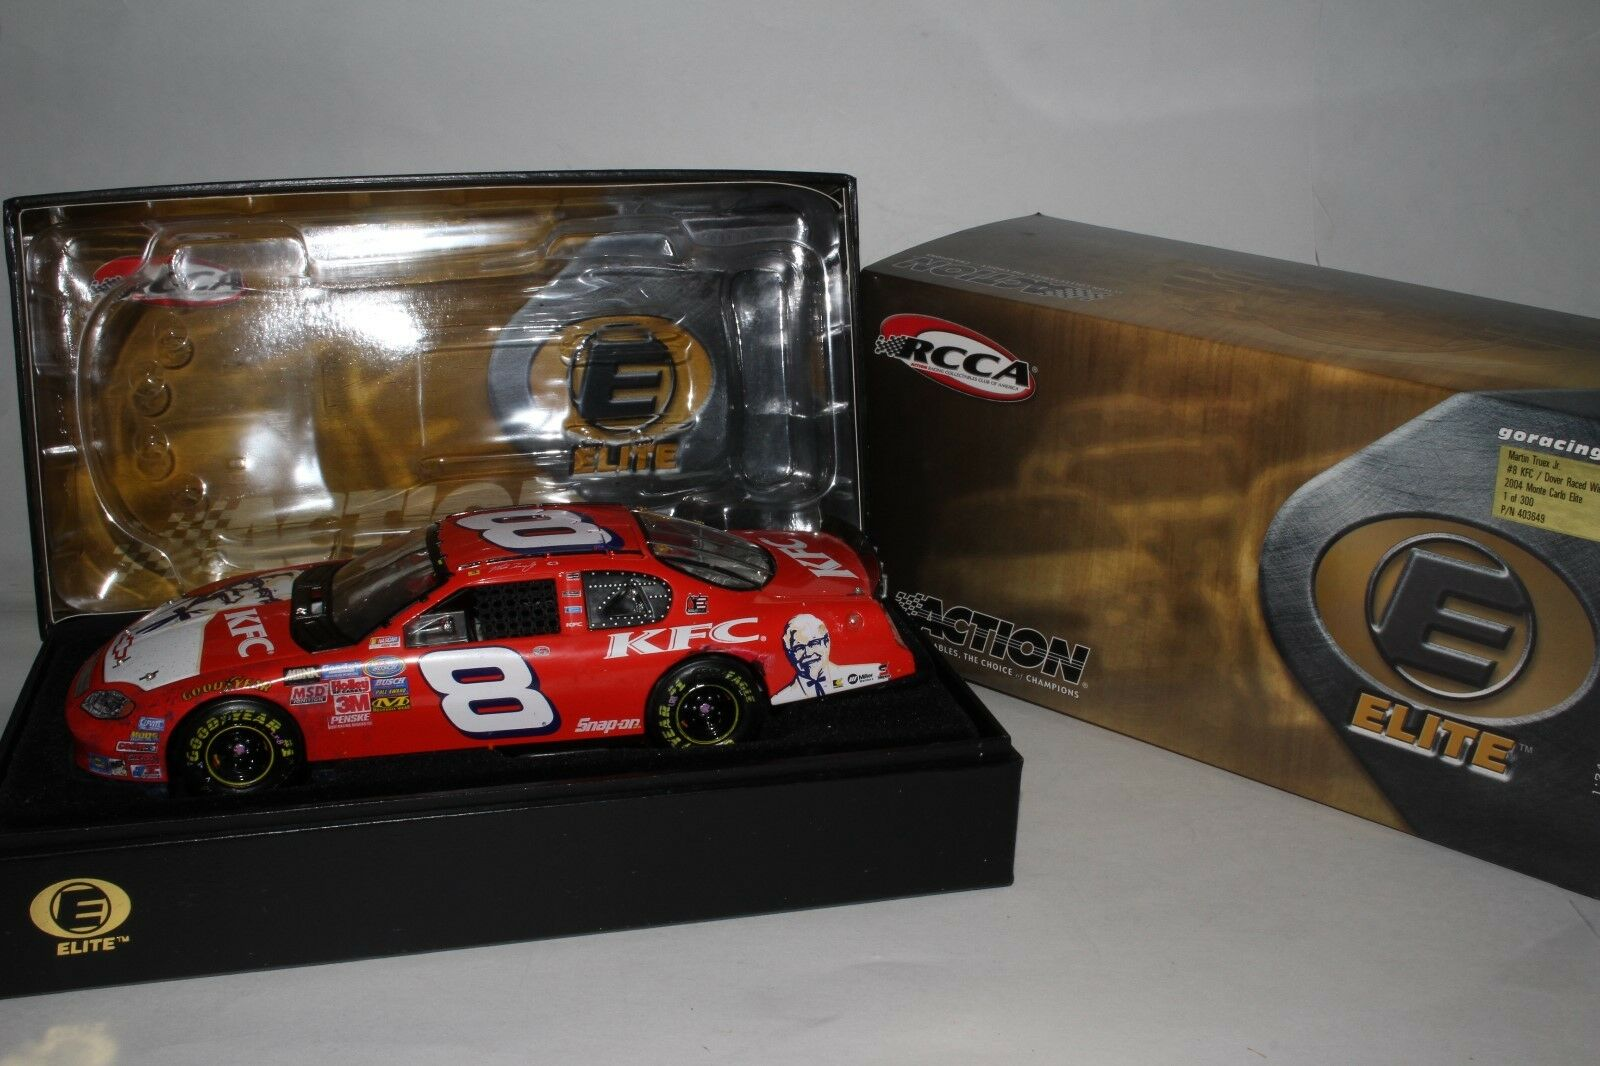 MARTIN TRUEX JR ELITE 2004 MONTE CARLO DOVER RACED WIN VERSION, 1 of 300